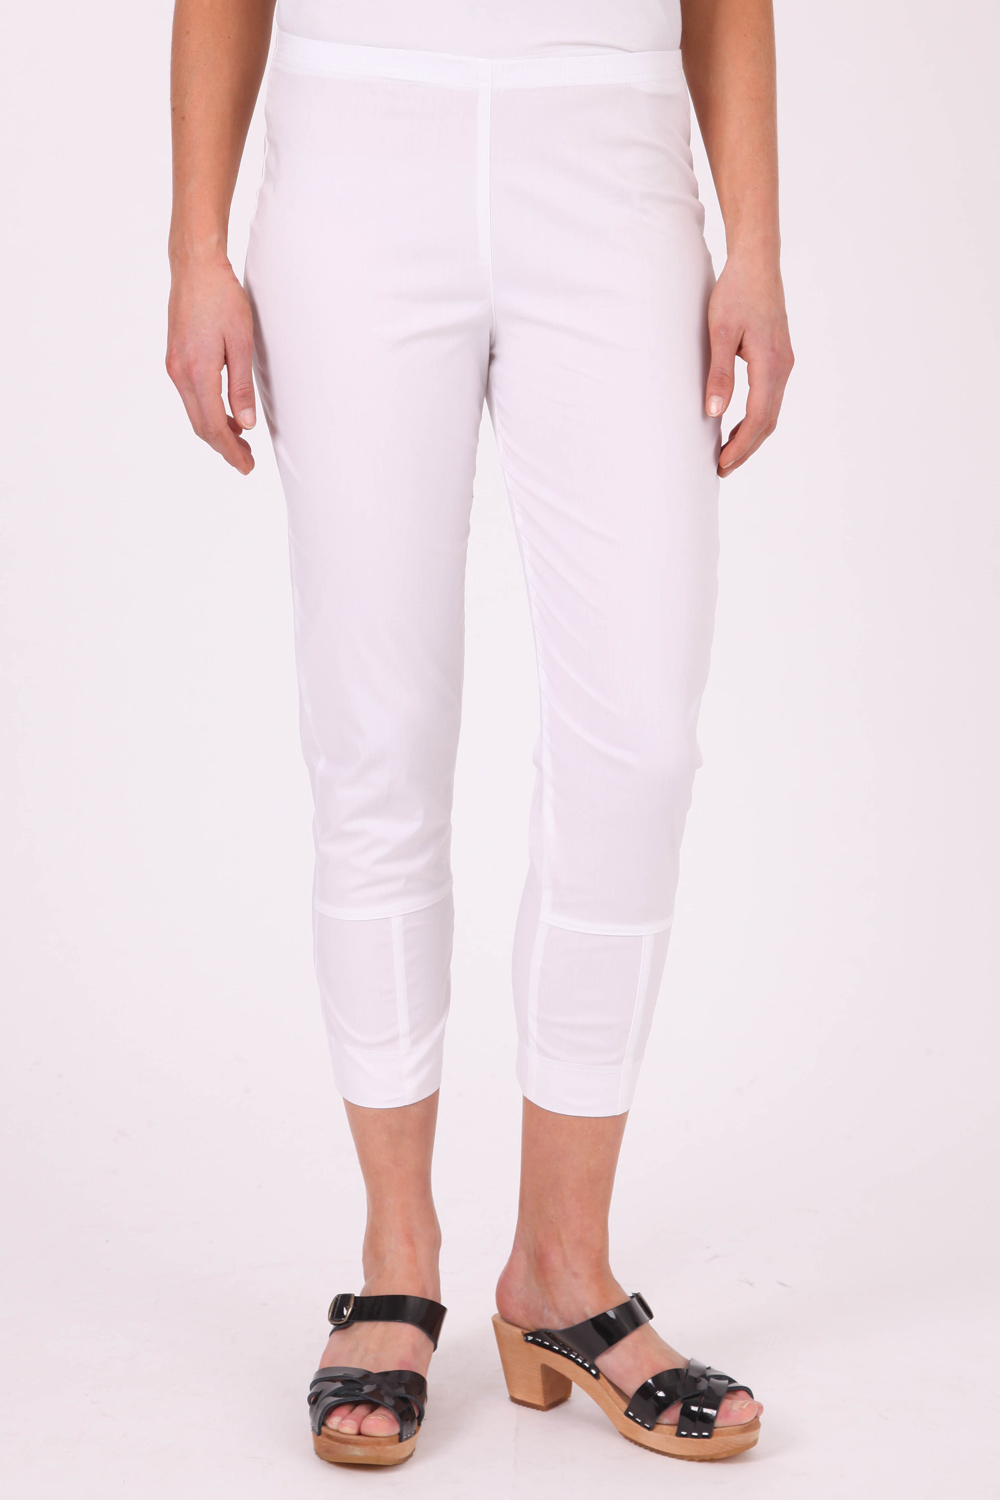 Find girls elastic waist pants at ShopStyle. Shop the latest collection of girls elastic waist pants from the most popular stores - all in one place.